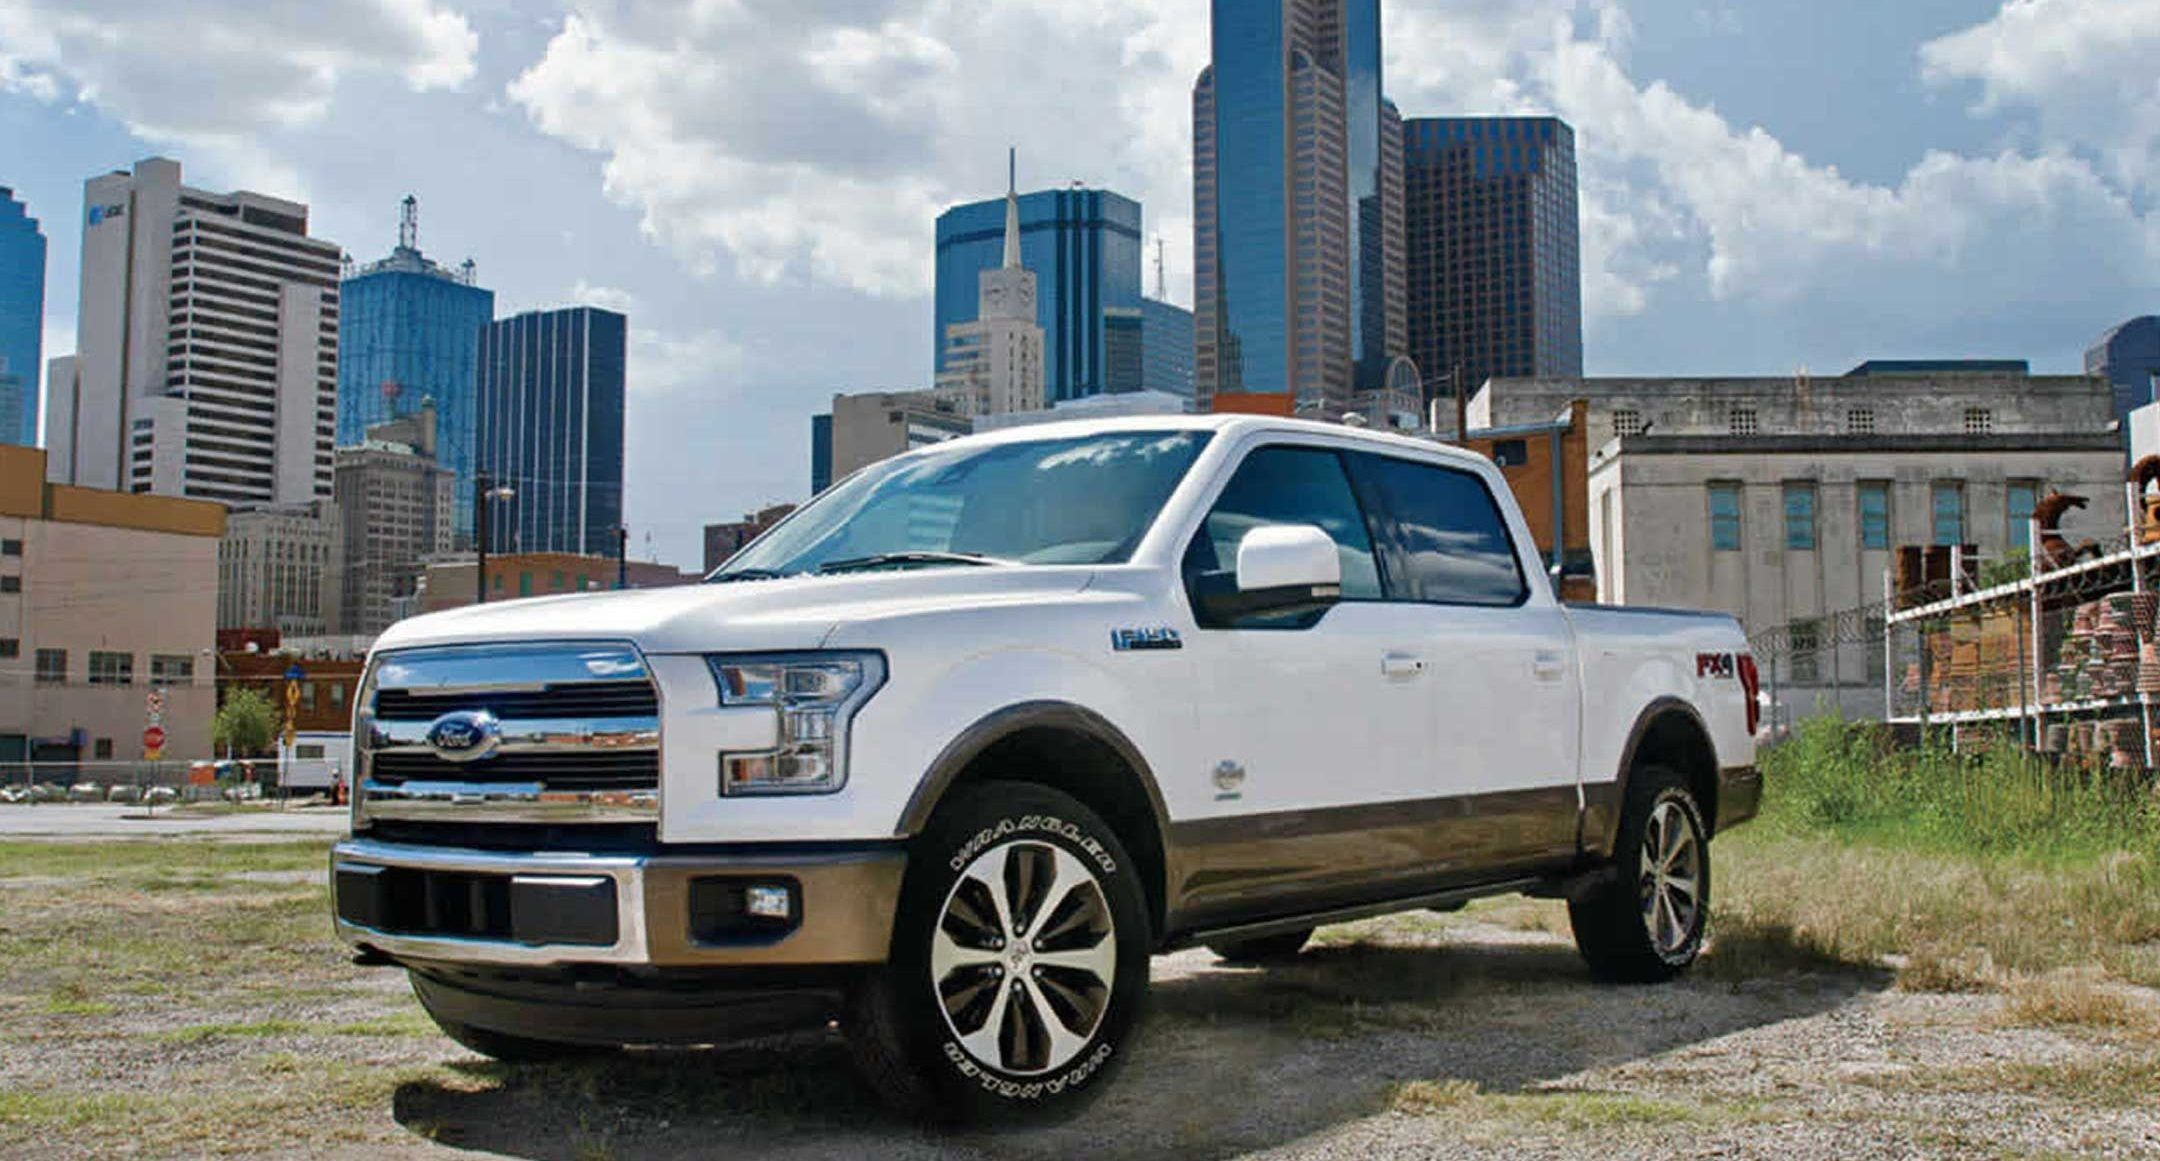 Vehicle shown above is a 2017 ford f 150 king ranch luxury supercrew